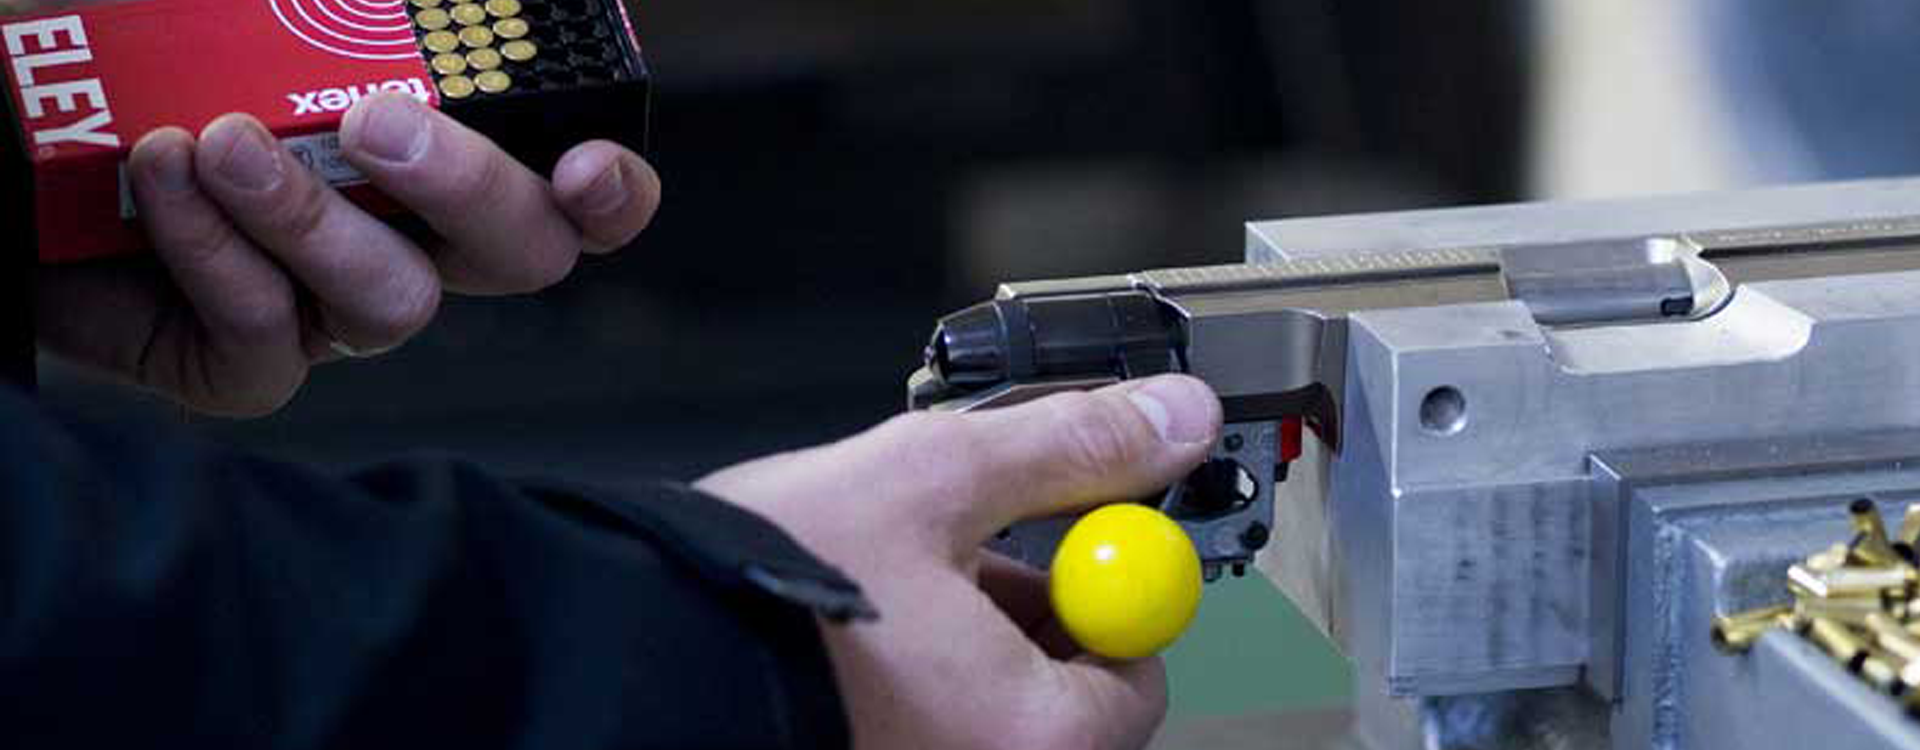 Benchrest shooters, to be the best you need to test